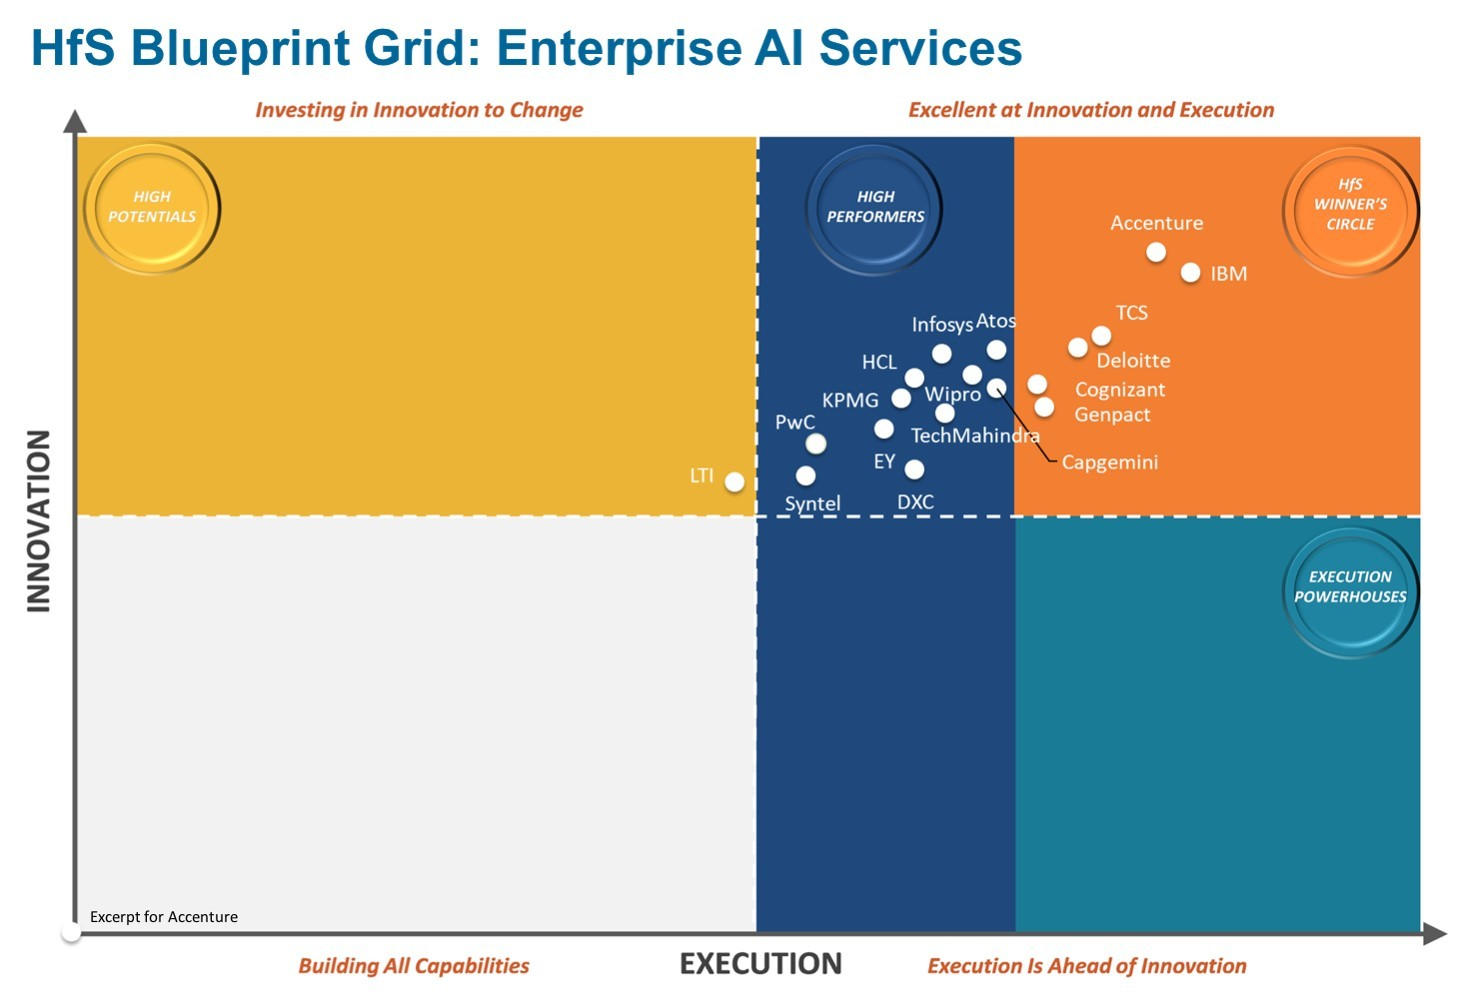 Accenture positioned as overall innovation leader in hfs research accenture positioned as overall innovation leader in hfs research report on enterprise artificial intelligence services business wire malvernweather Choice Image